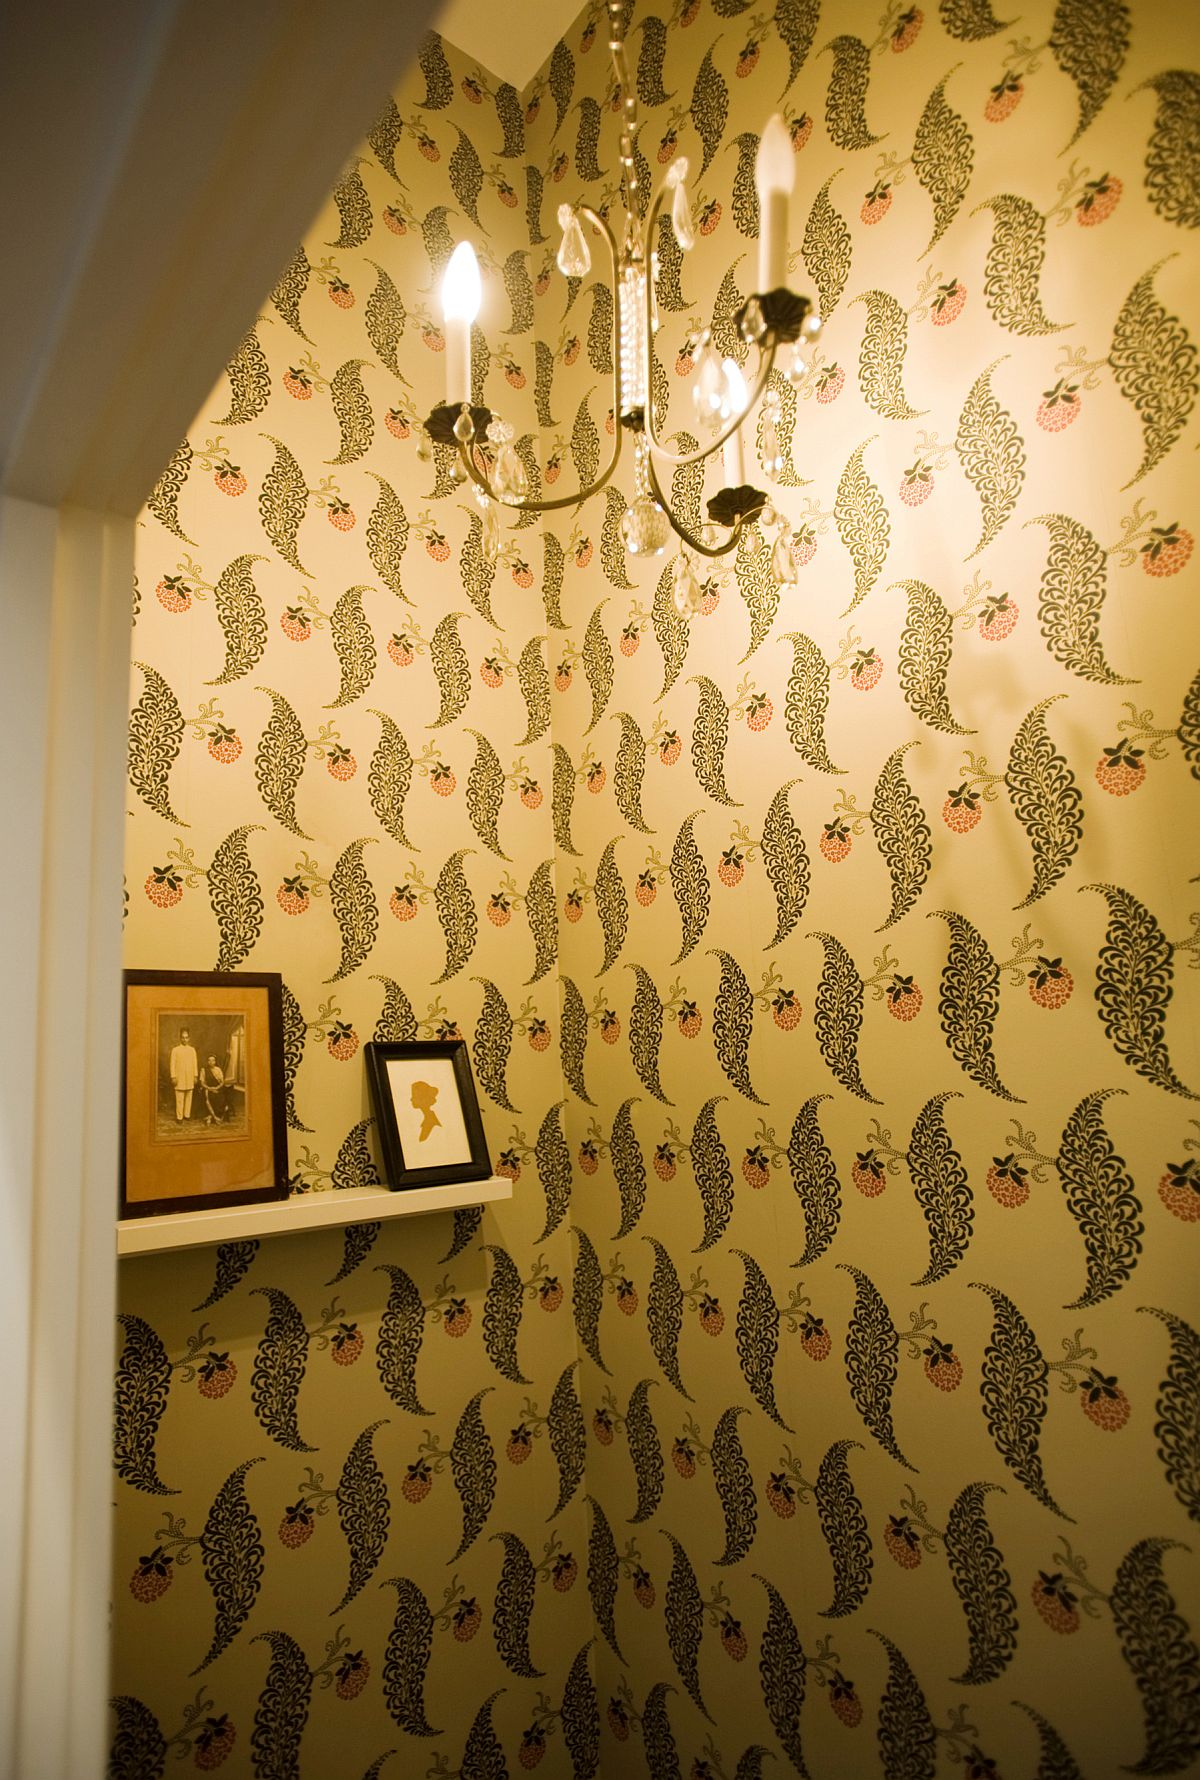 Vintage wallpaper and lighting idea for the powder room